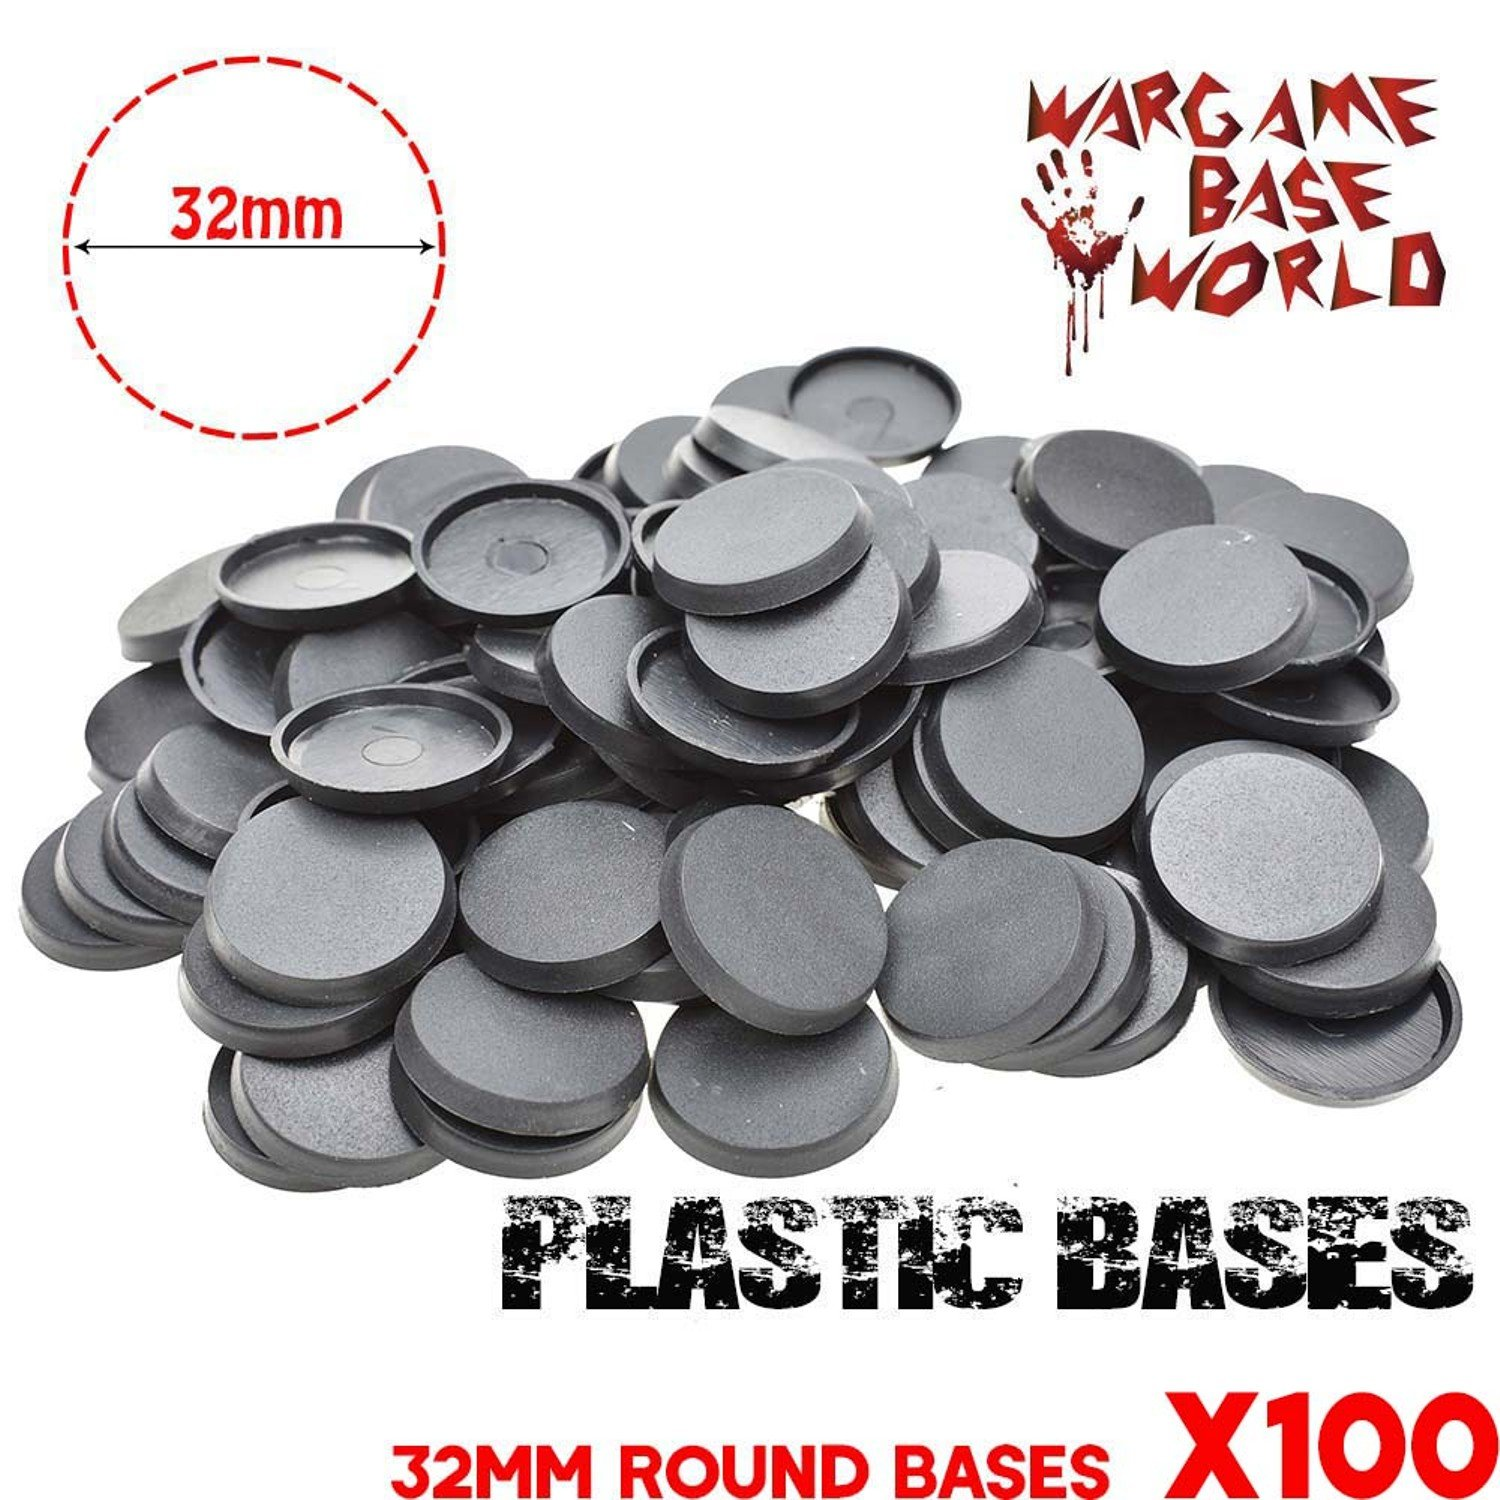 32mm Round Plastic Bases for Gaming Miniatures and Table Games